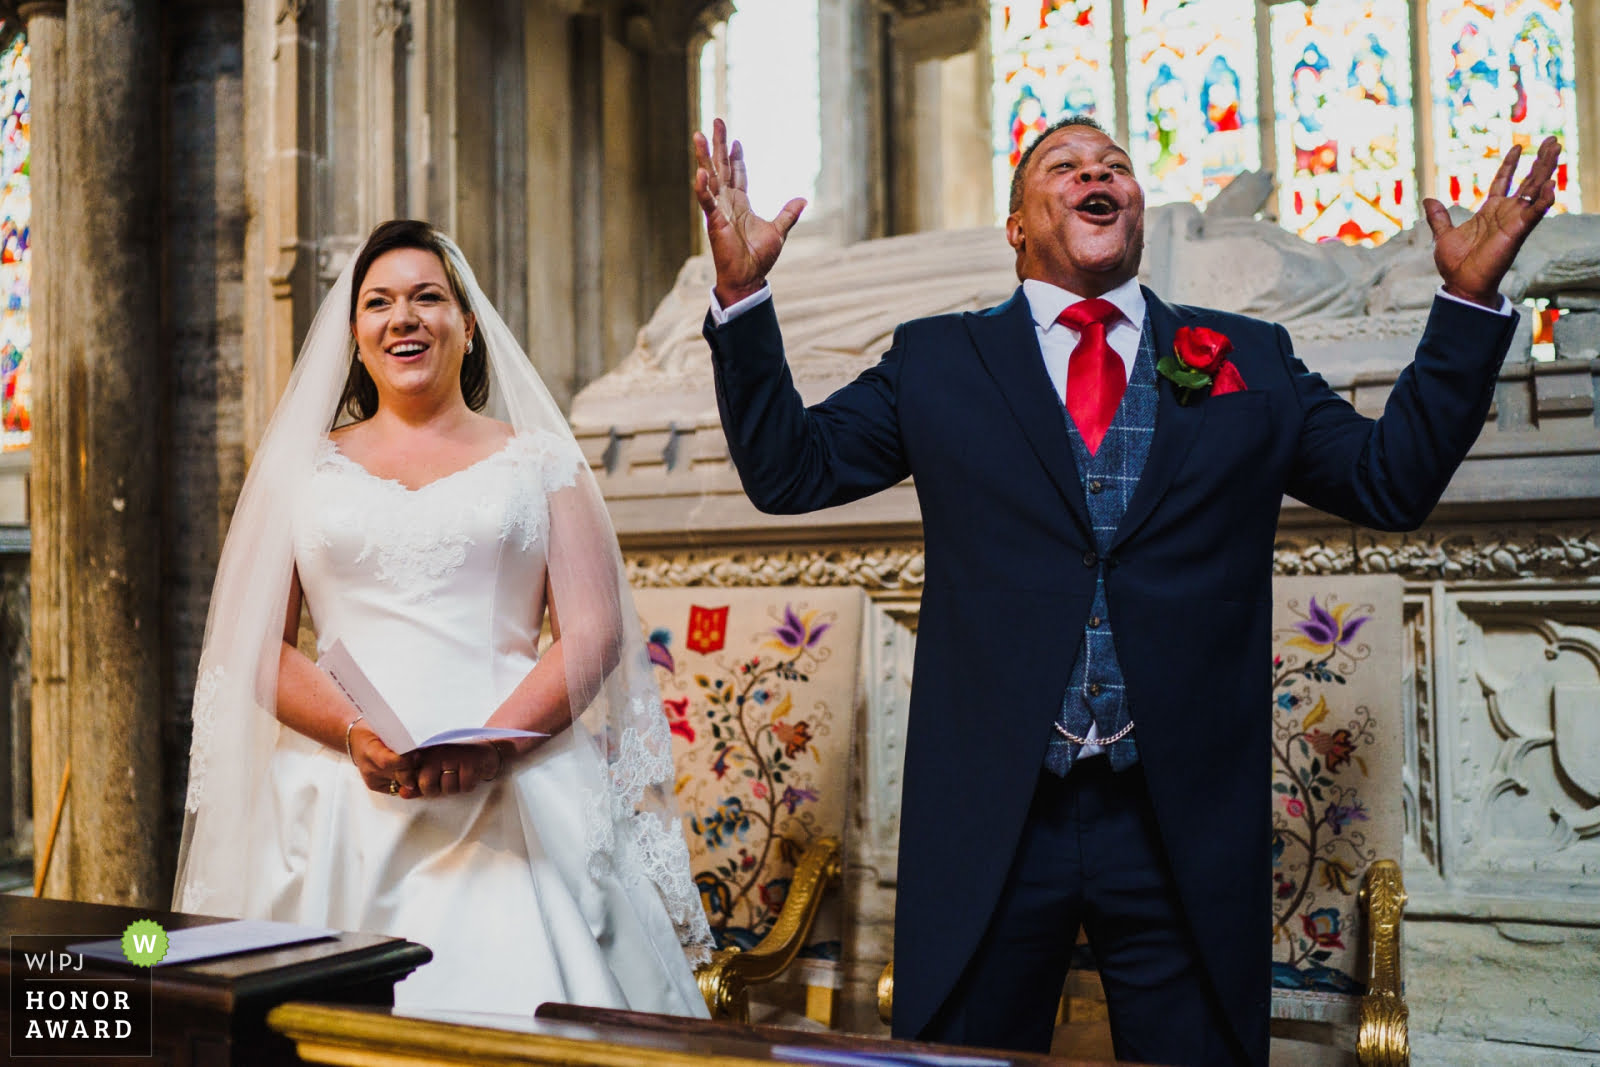 A wedding at Ely Cathedral